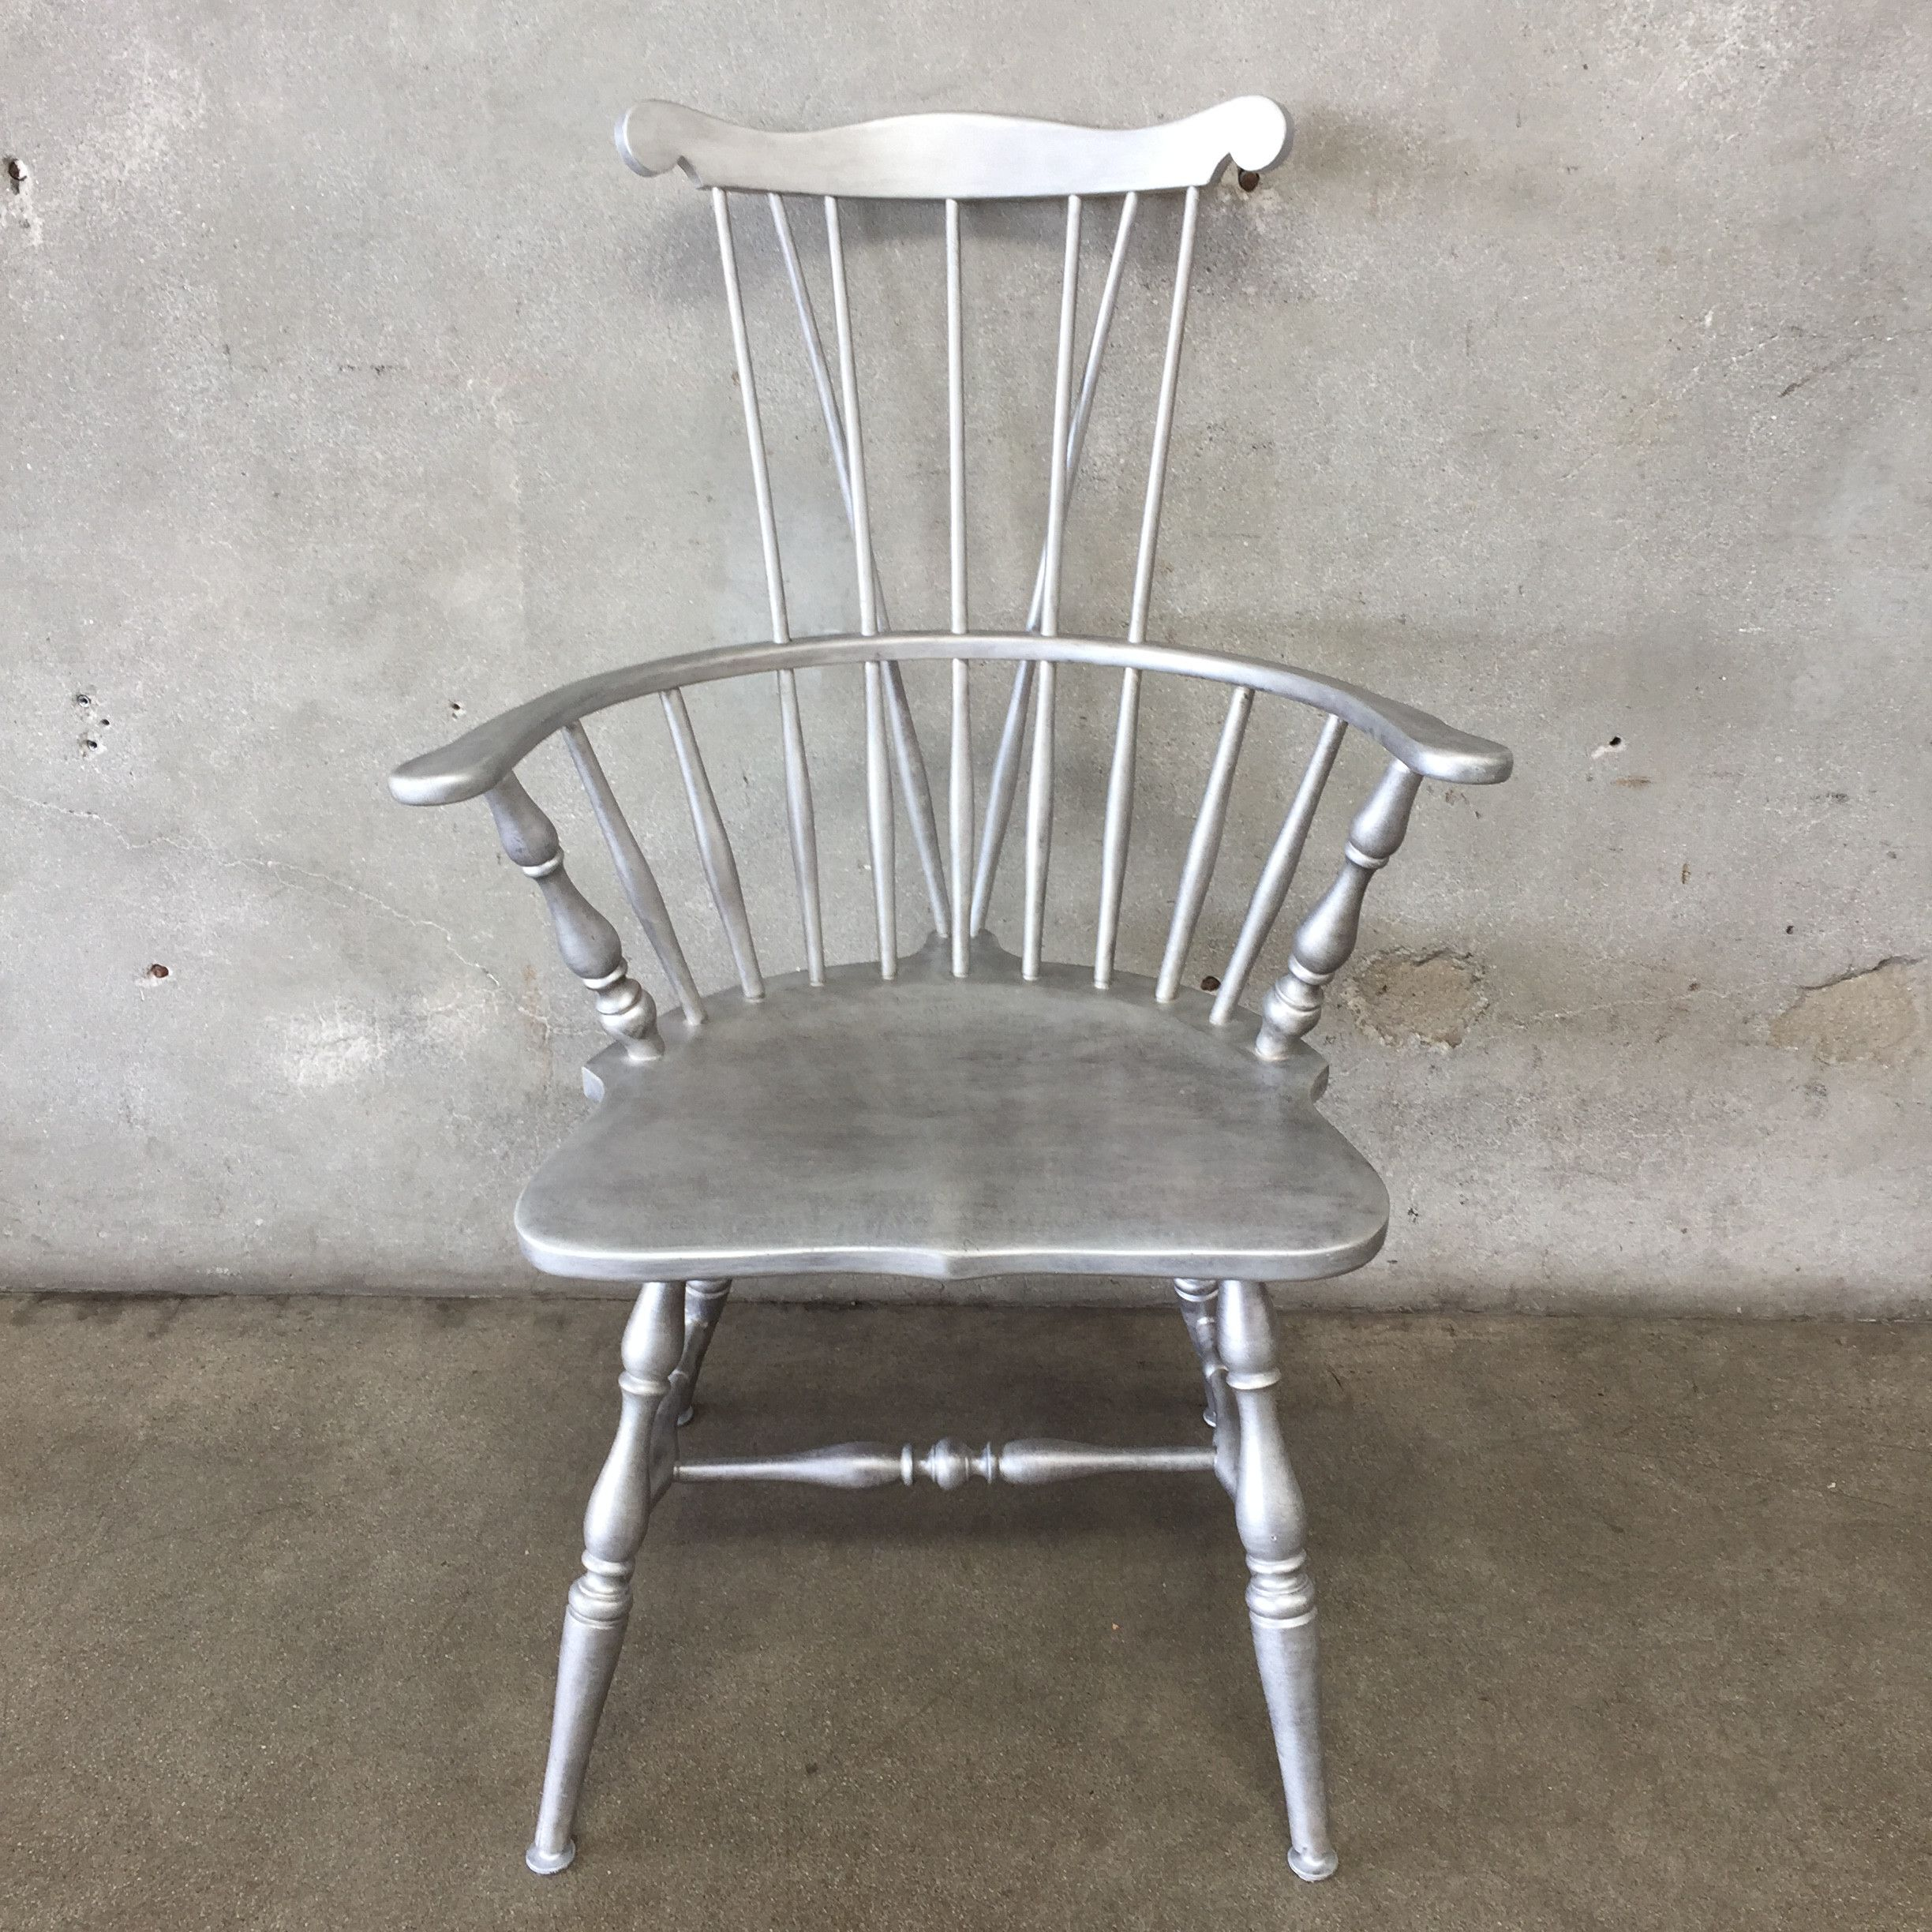 upcycled windsor style chair color brushed nickle products